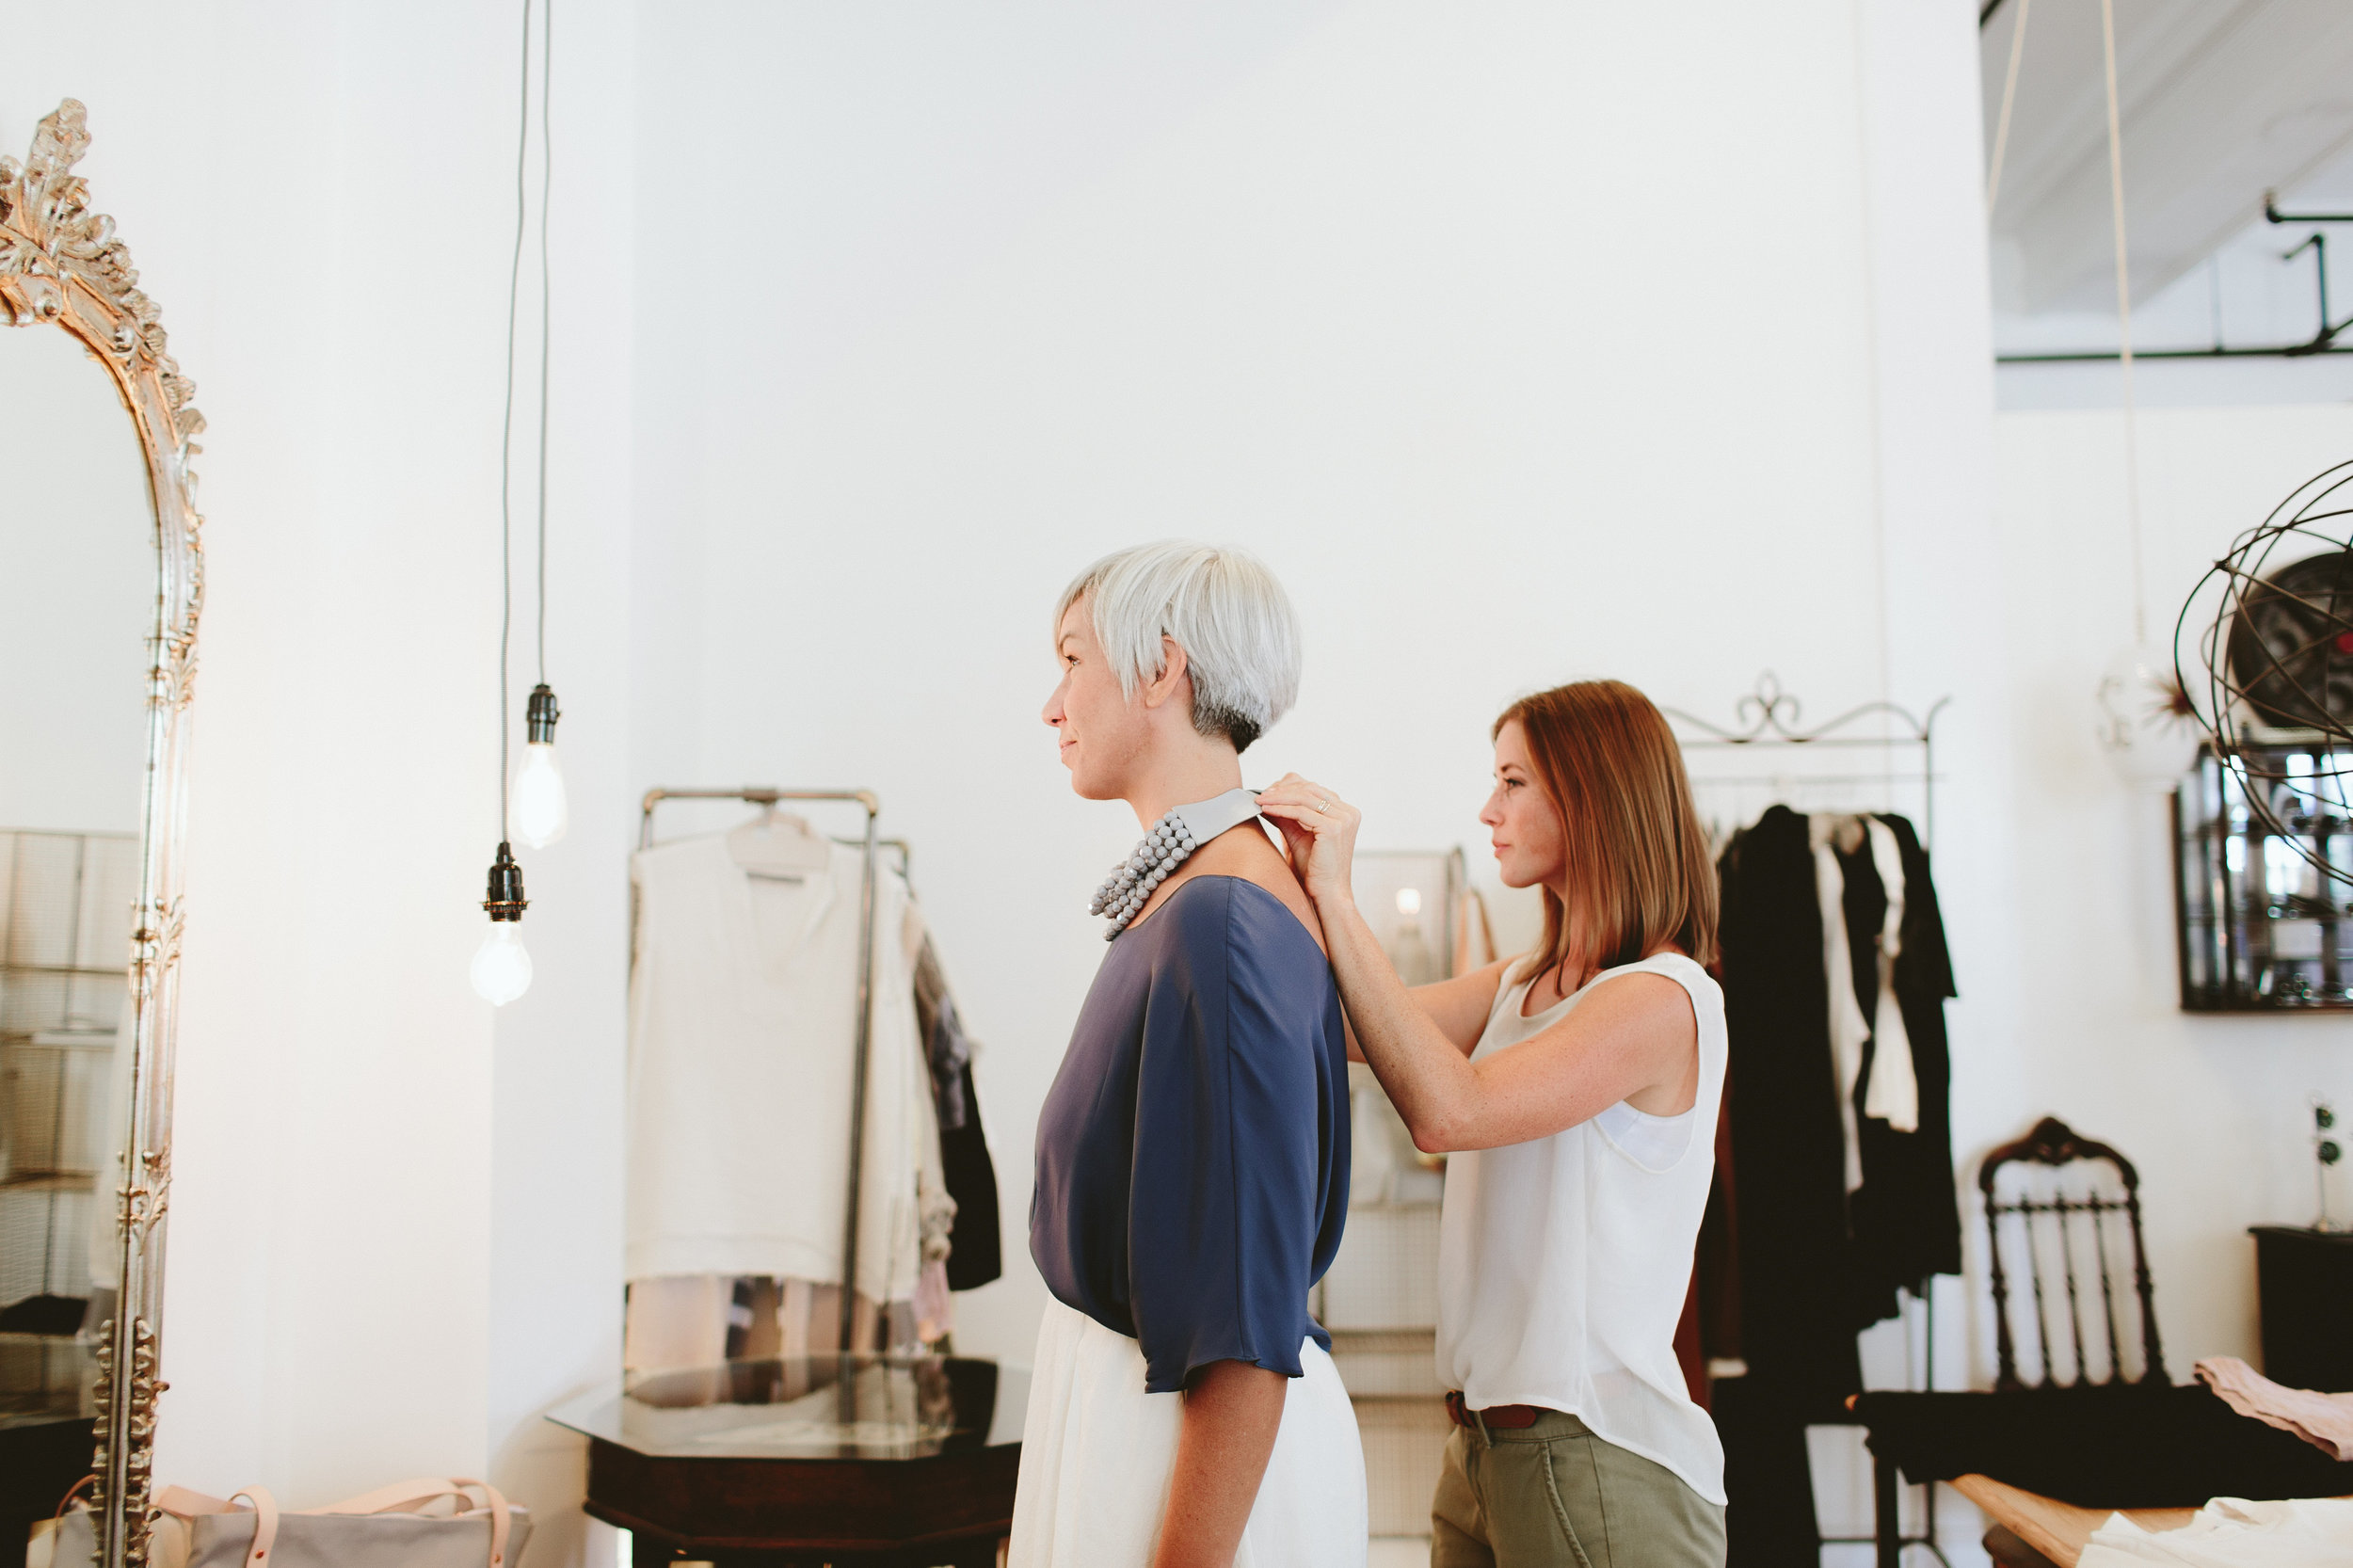 CREATING WARDROBES THAT WORK FOR YOU, NOT AGAINST YOU - As women, we spend a lot of wasted time and money buying clothes that don't fit, are on super sale, or that look good on a mannequin or our friends.But that doesn't mean it works for us.